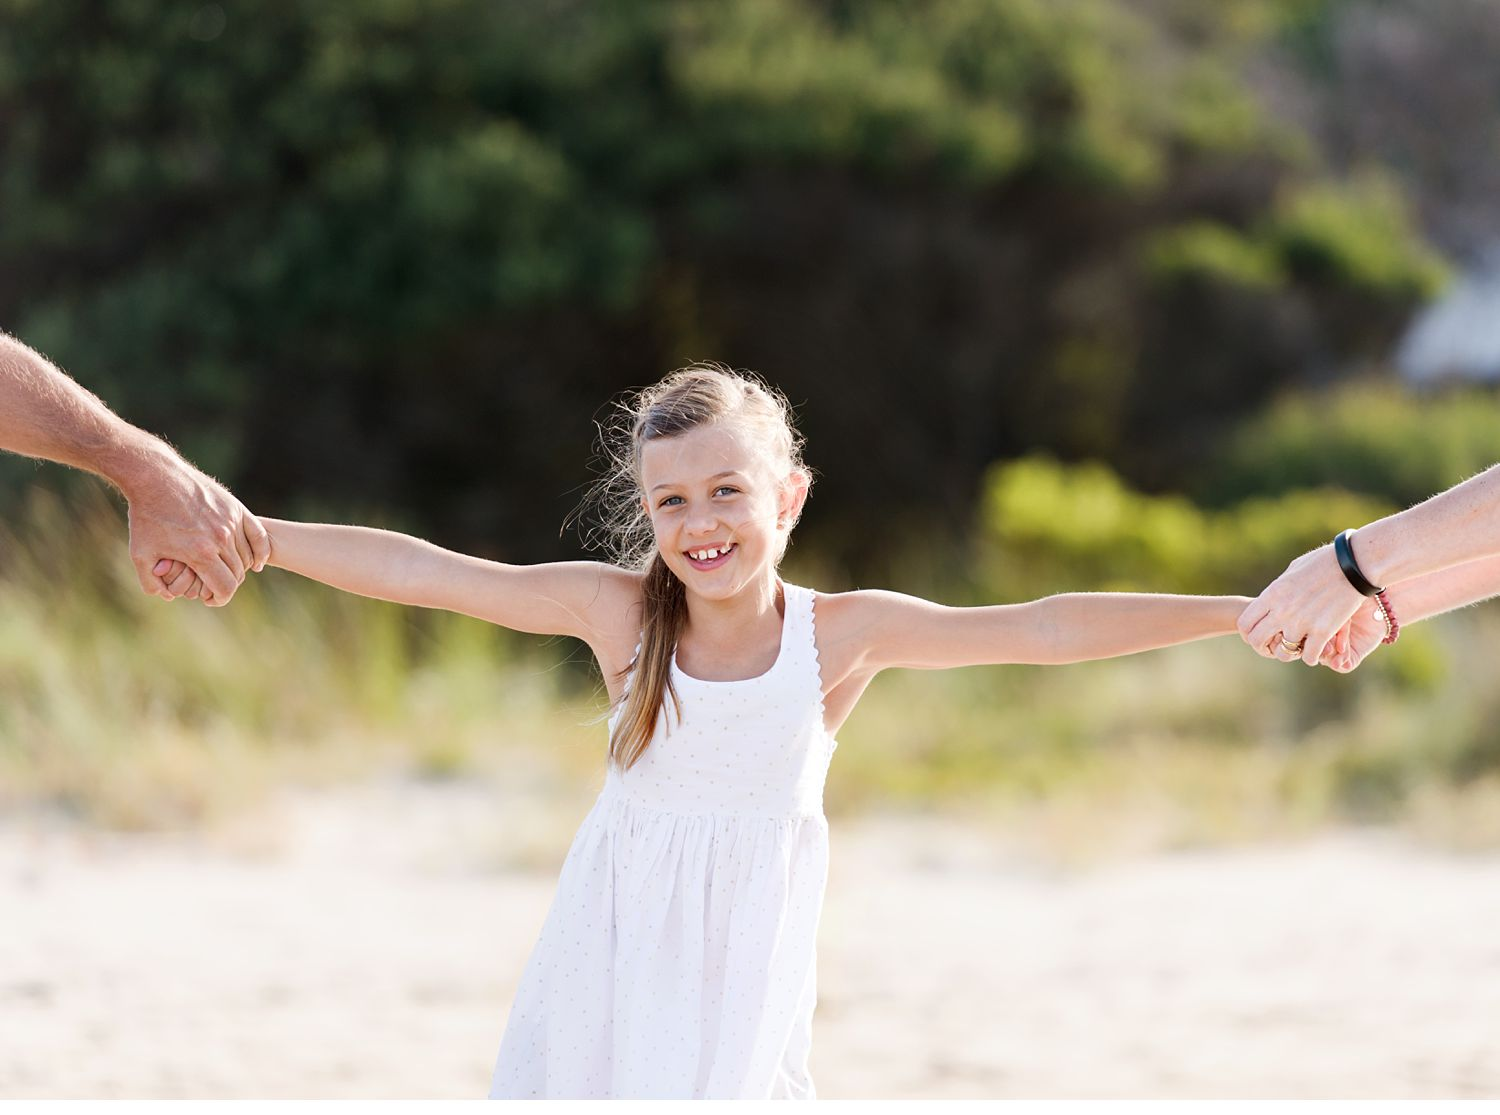 bec-stewart-photography-extended-family-photography-session-melbourne-australia-city-of-casey-14.jpg